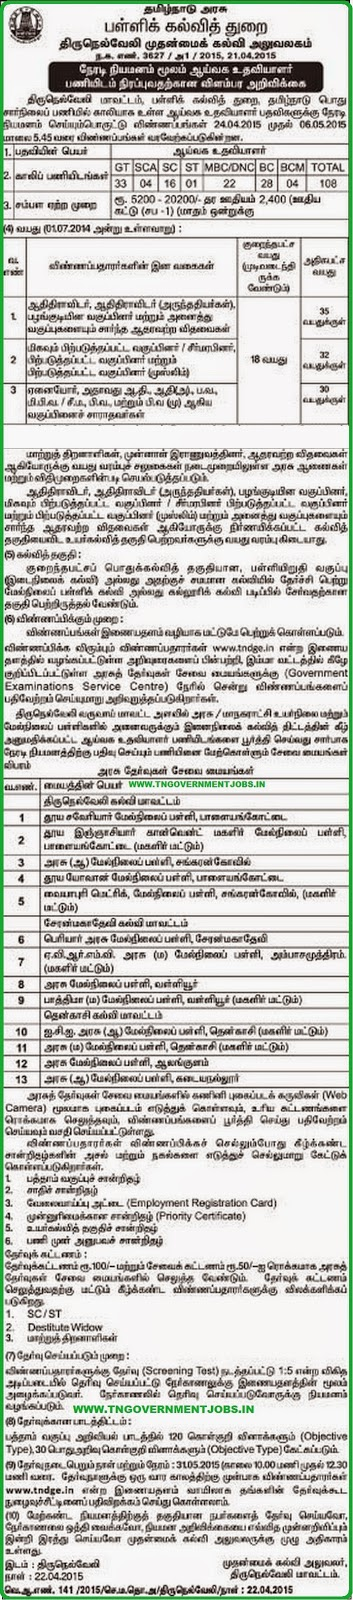 Tirunelveli District CEO Lab Asst Recruitments 2015 (www.tngovernmentjobs.in)